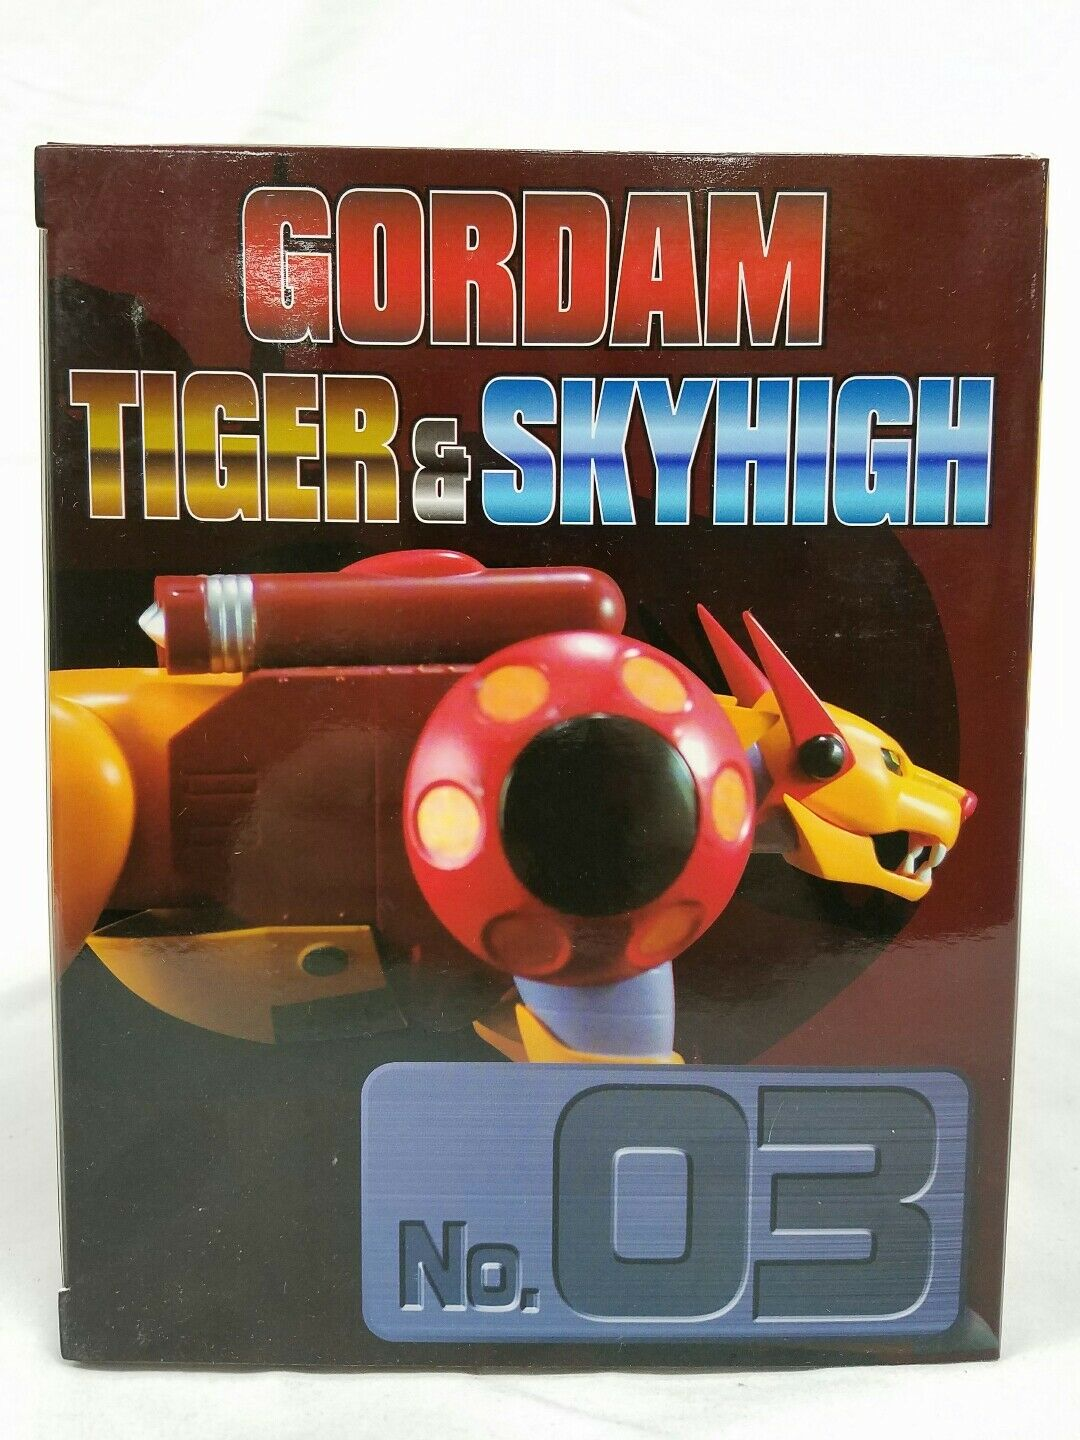 Gordam Tiger & Sky High Figure Dynamite Action Action Action Hybrid No 3 New Sealed 0b185d